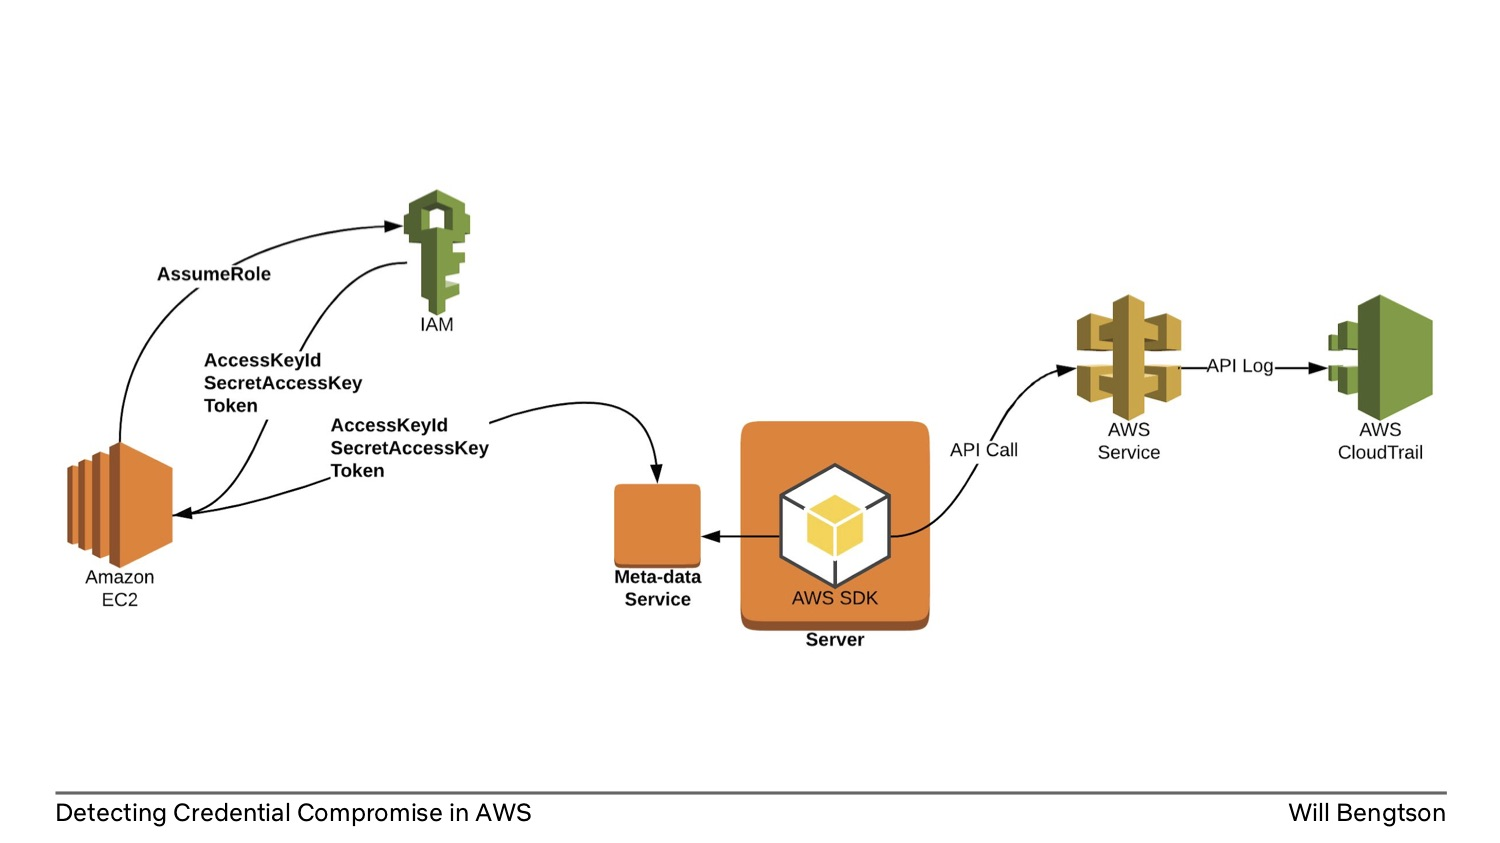 Detecting Credential Compromise in AWS: AWS Process Overview